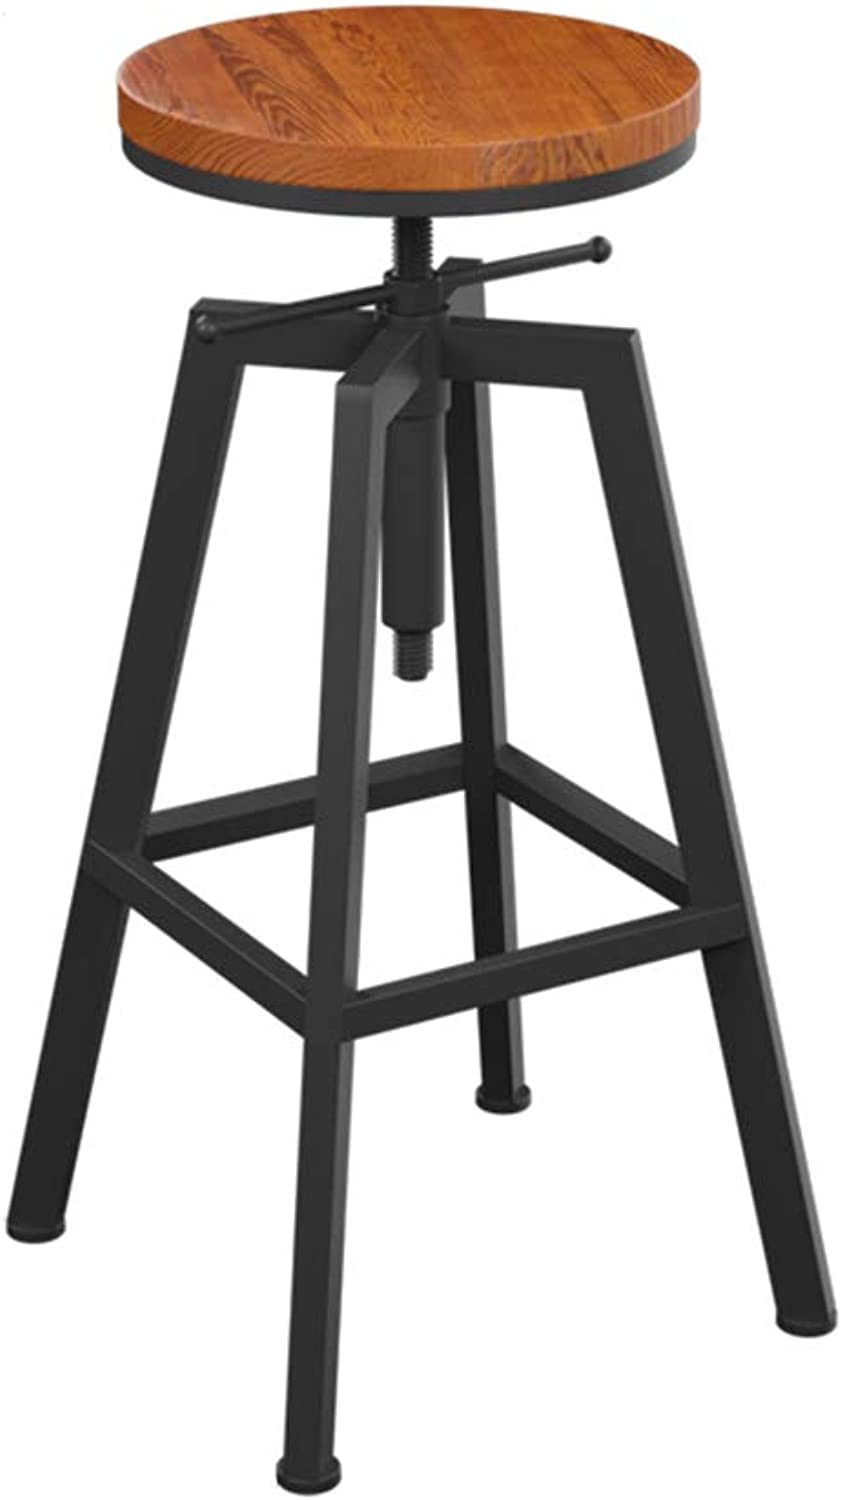 Bar Chair Retro Industrial Back Breakfast Kitchen Chair Stool Round Solid Wood + Iron Material Adjustable 65-85CM (Size   No backrest)